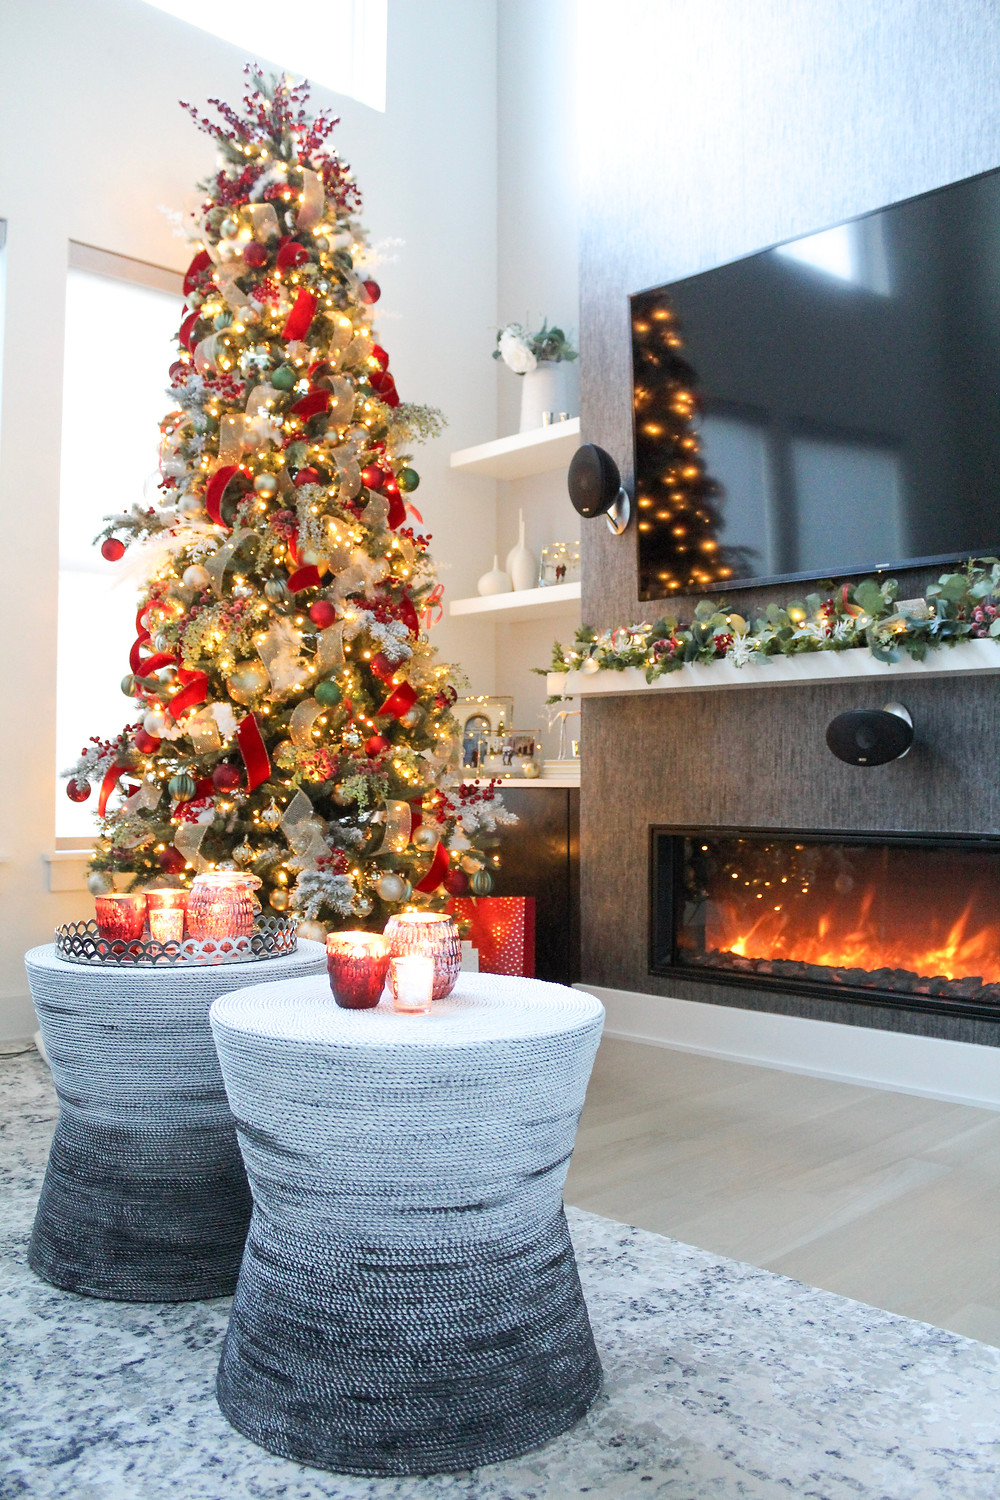 Walking In A Winter Wonderland Holiday Home Tour. #christmas #holidaydecorating #bhghowiholiday